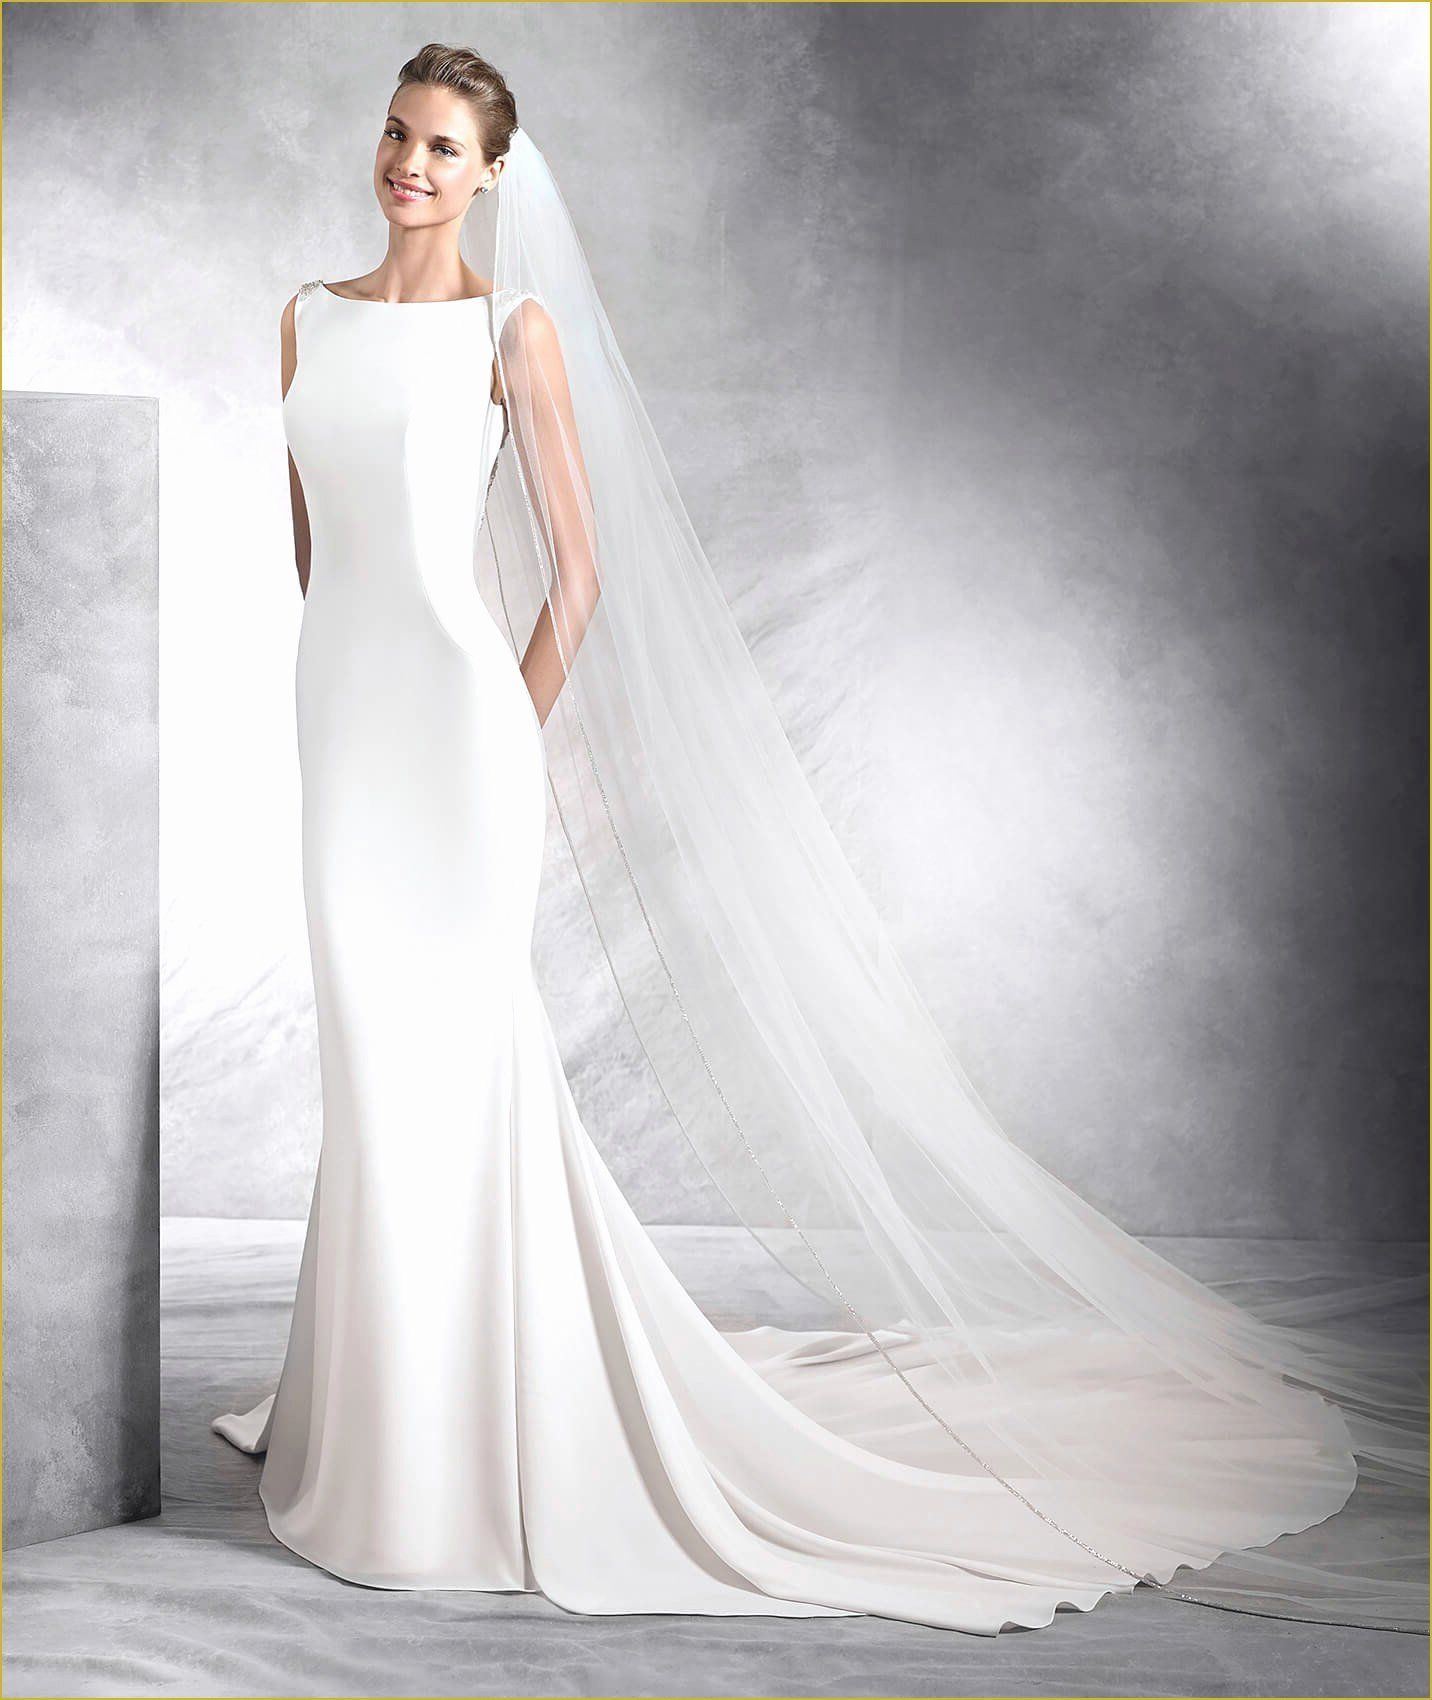 Wedding Dress Alterations Near Me in 2020 Tailored